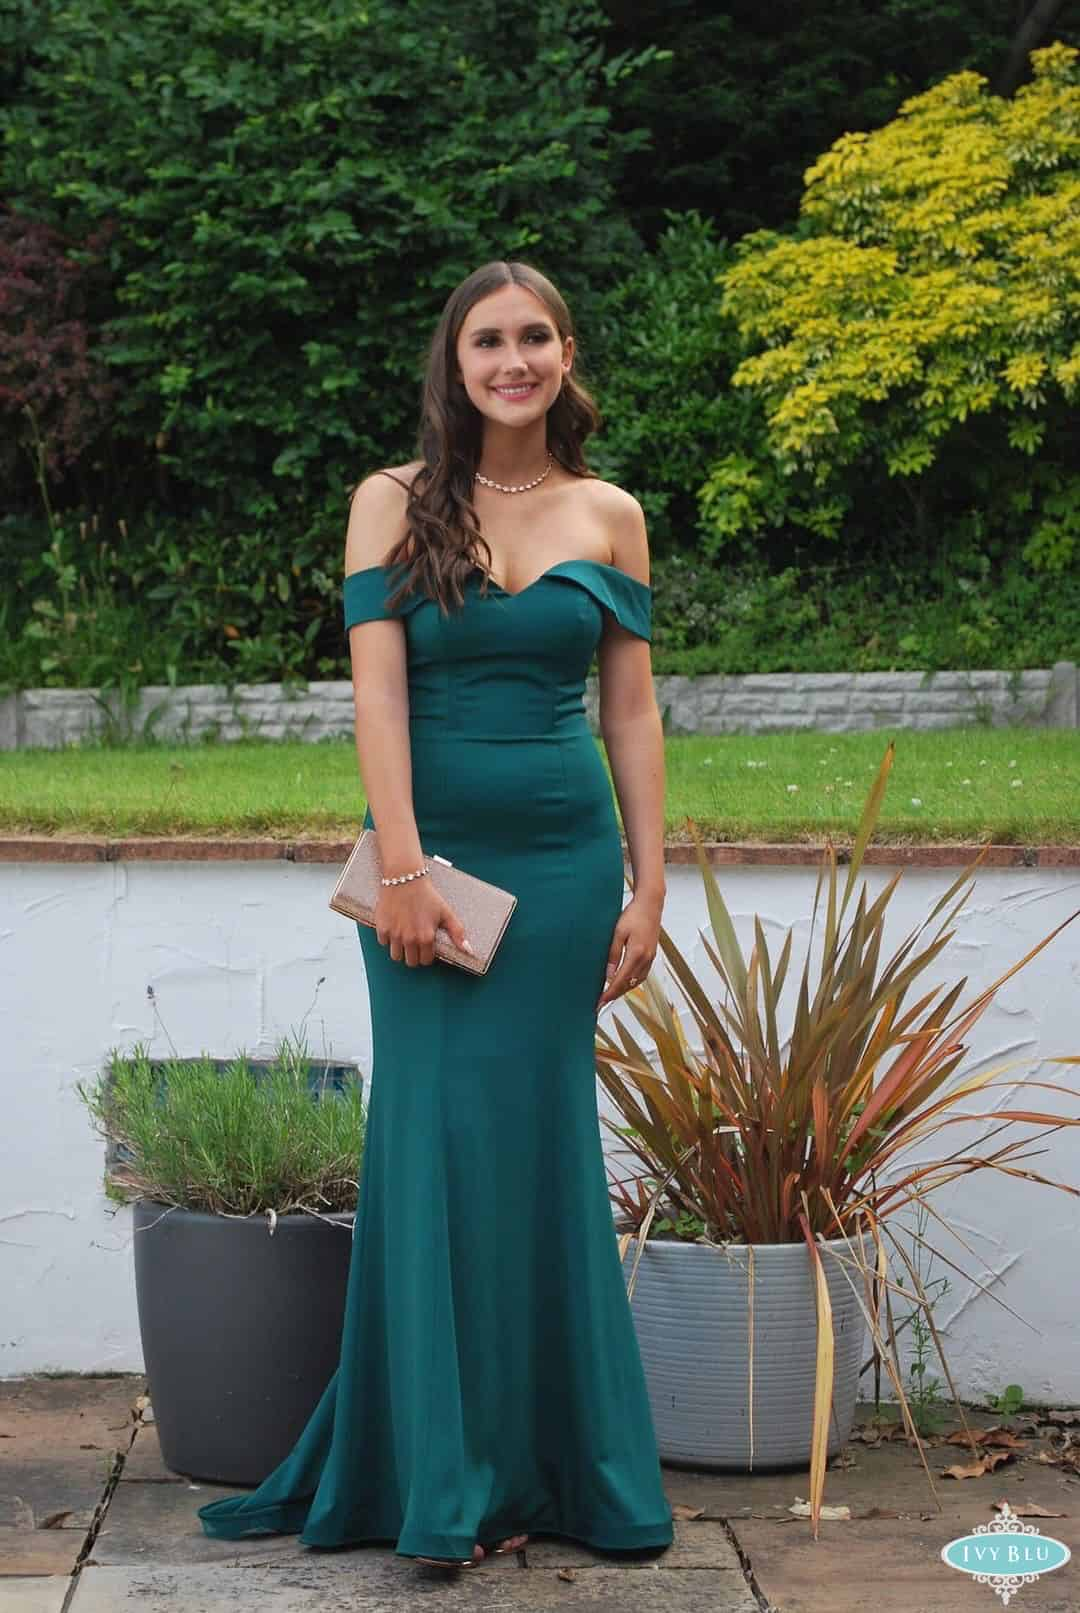 Girl In Full Length Green Off The Shoulder Dress